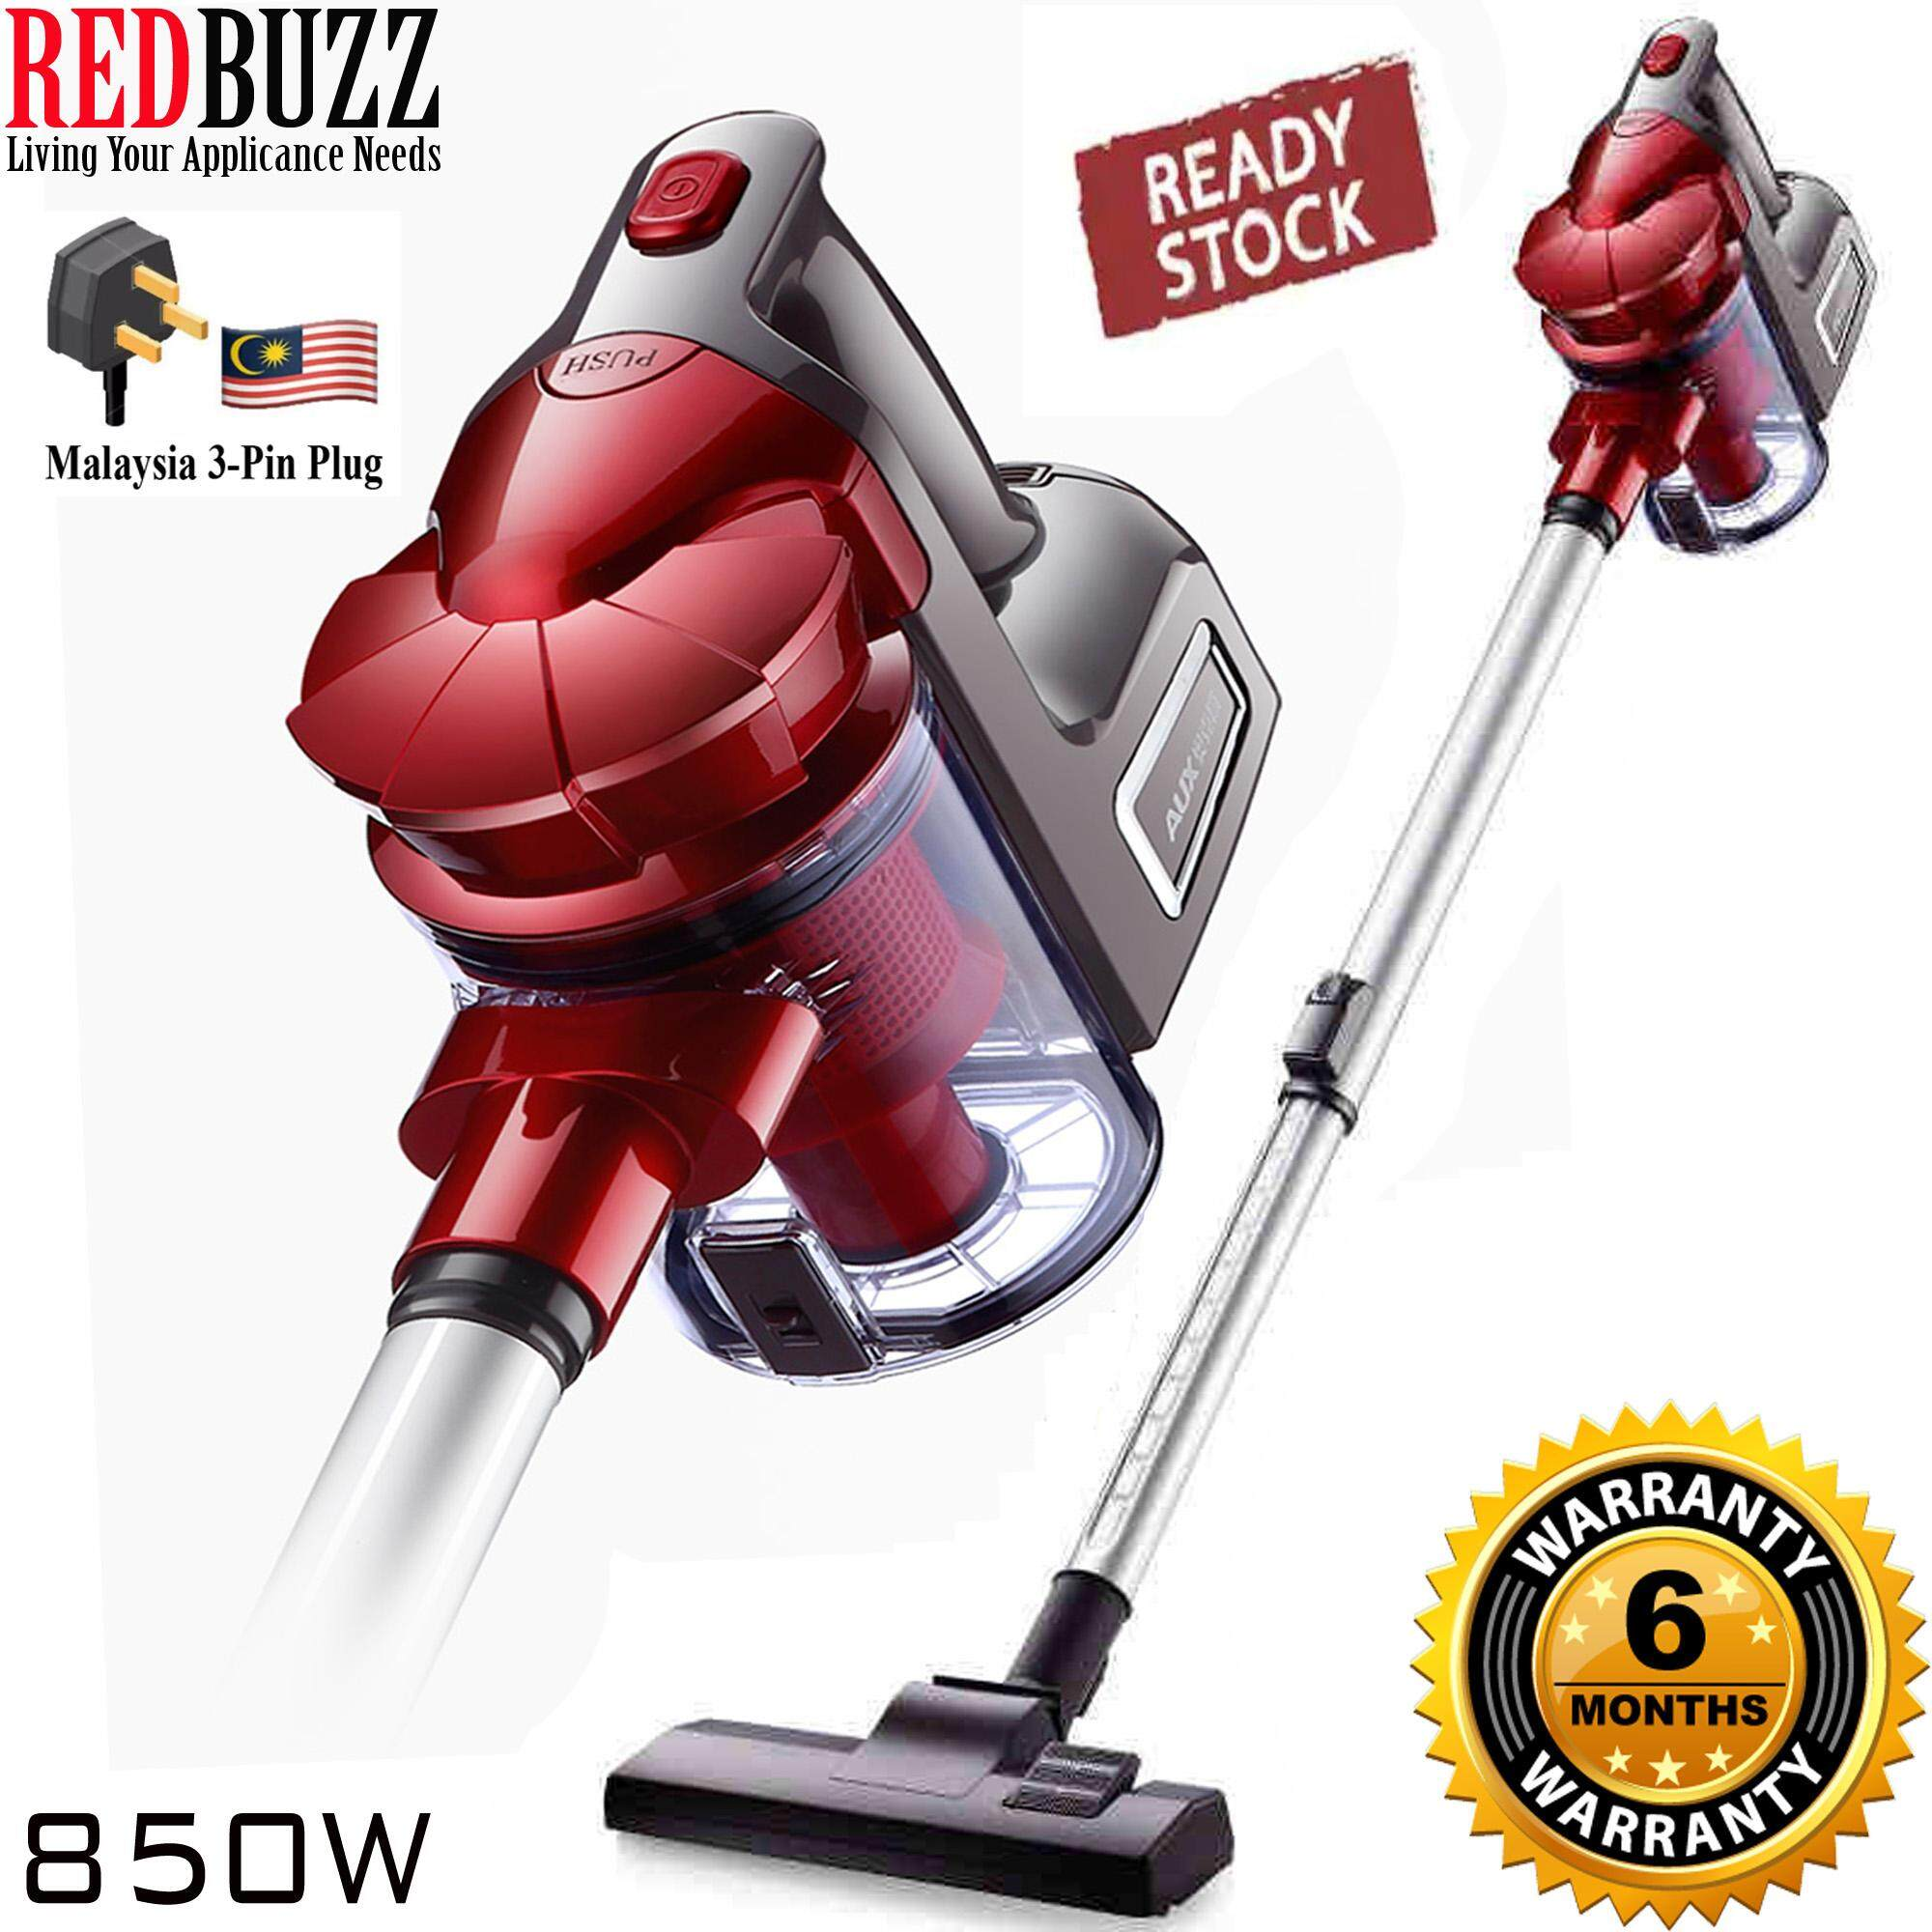 REDBUZZ Spandy Aux Design Dual Cyclone Strong Suction 850W Portable Handheld Vacuum Cleaners